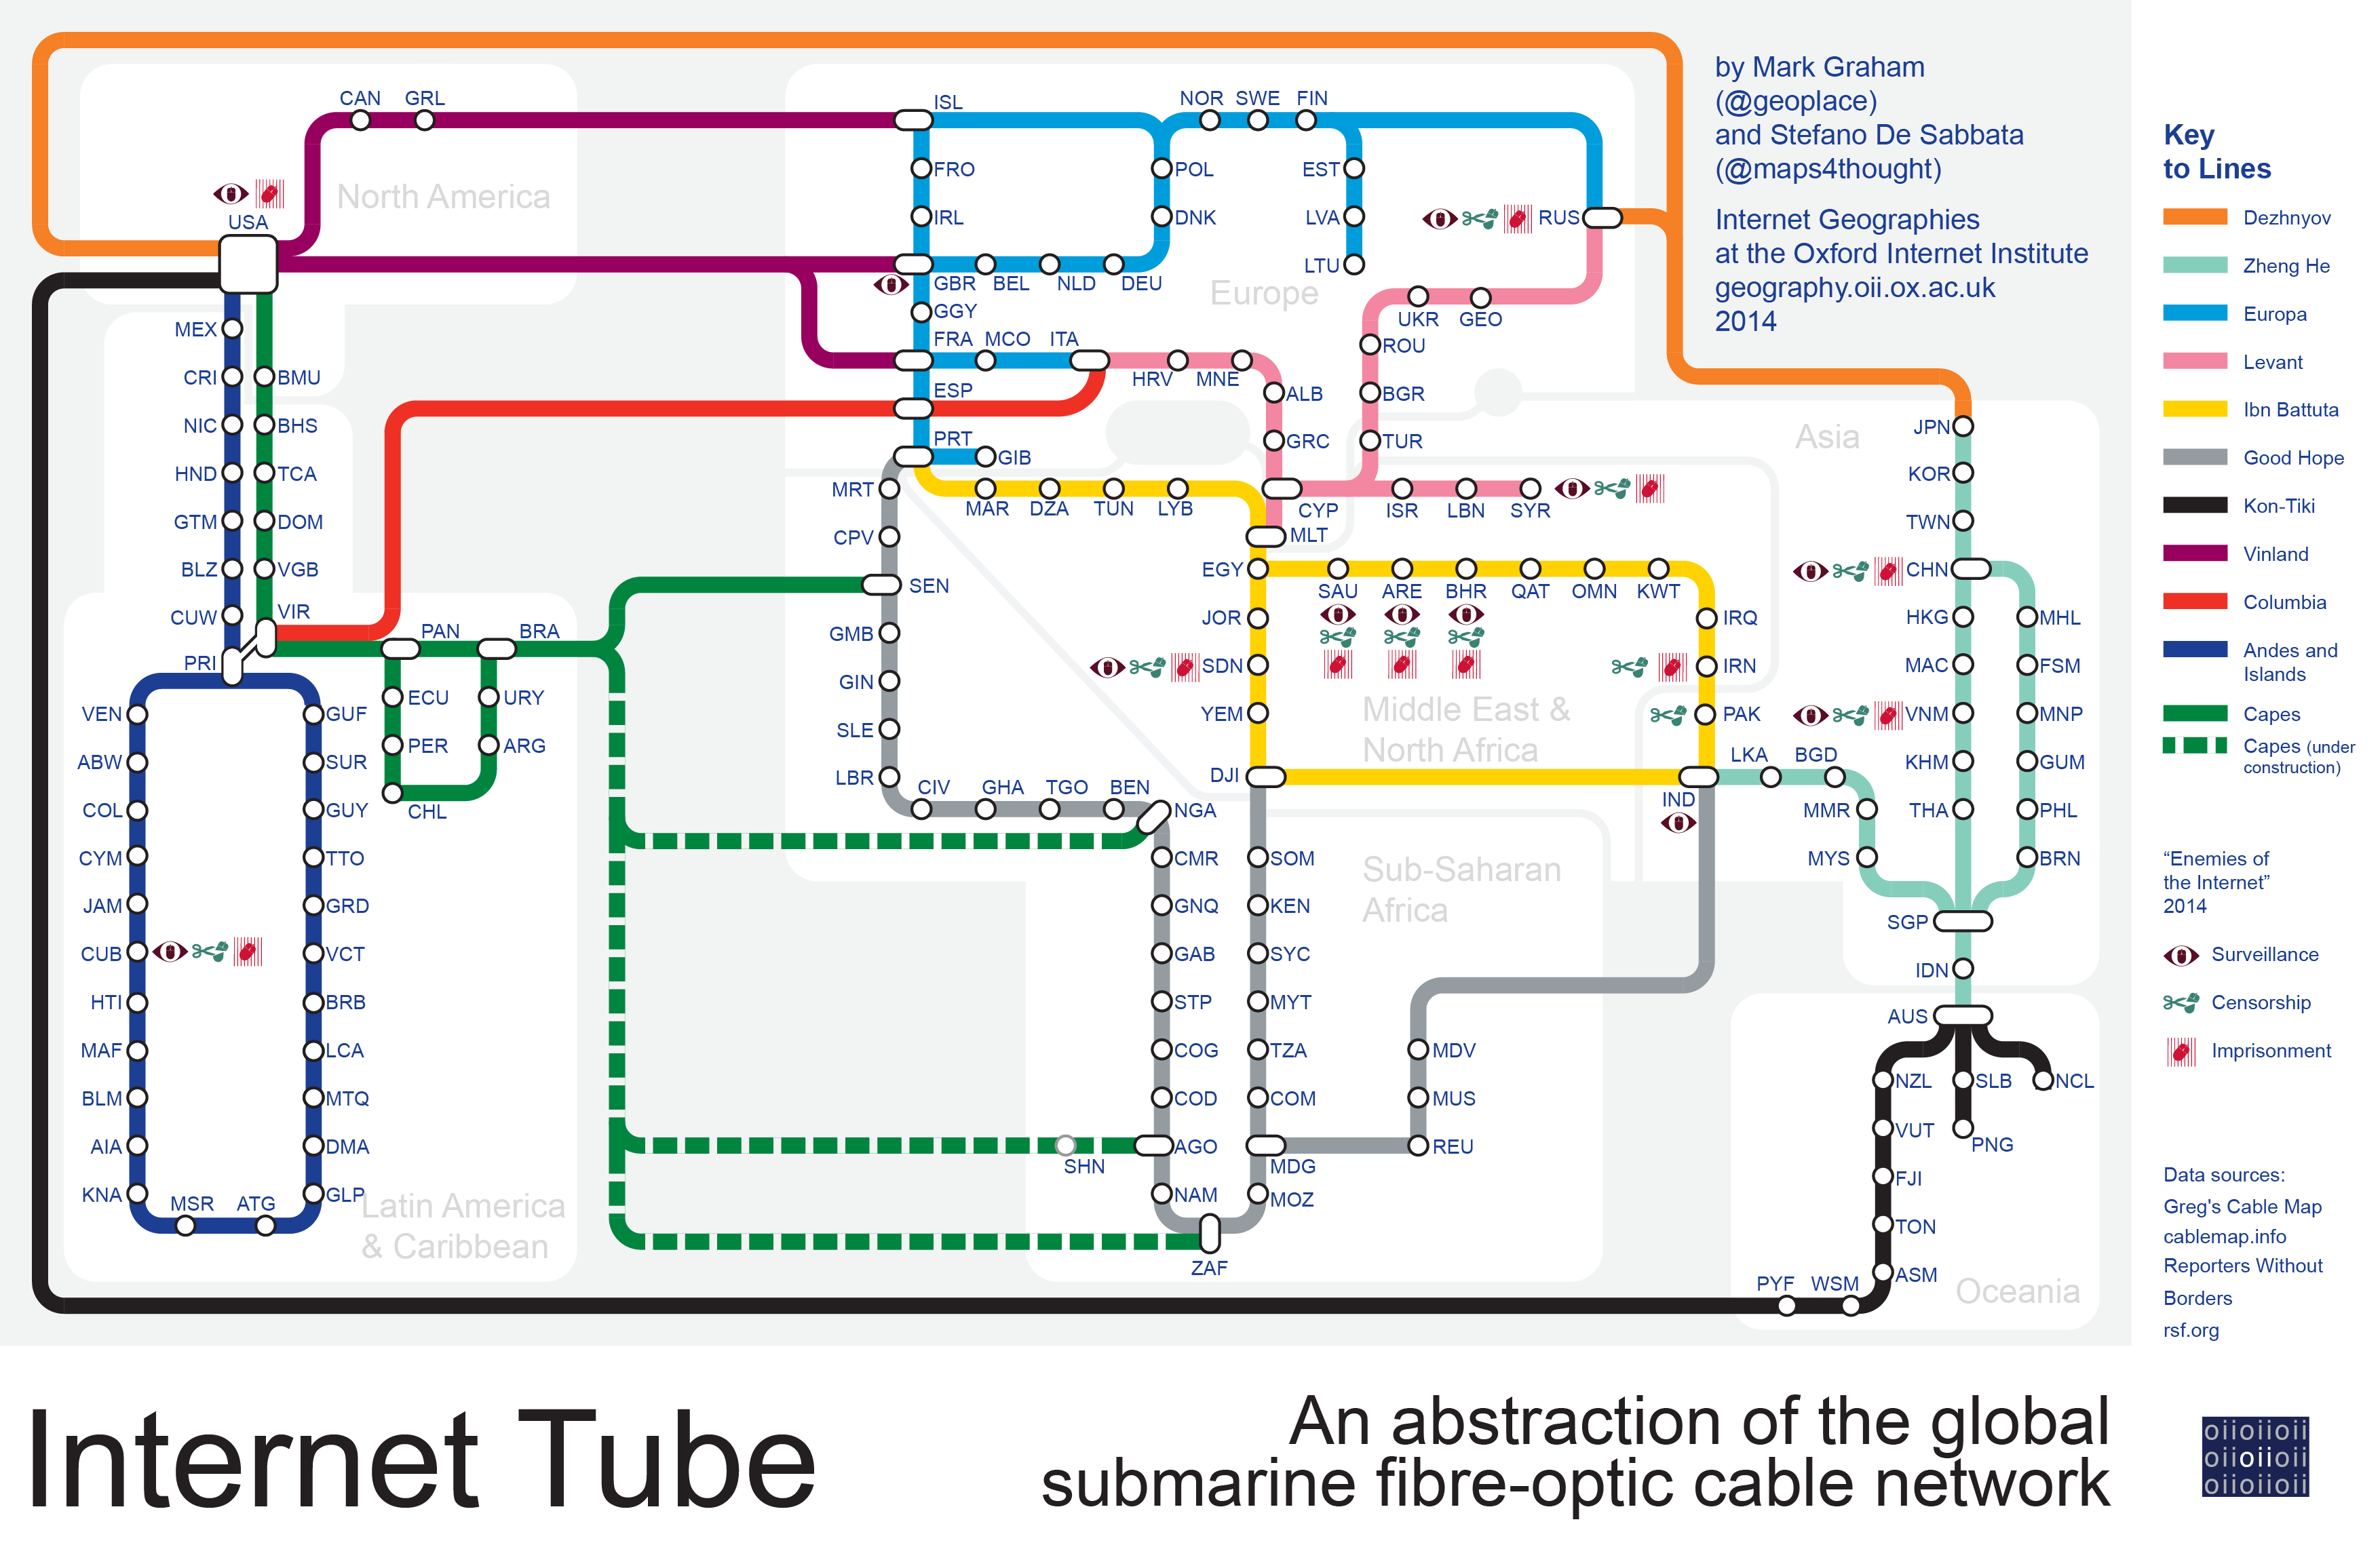 Mapping the global submarine fibre-optic cable network |